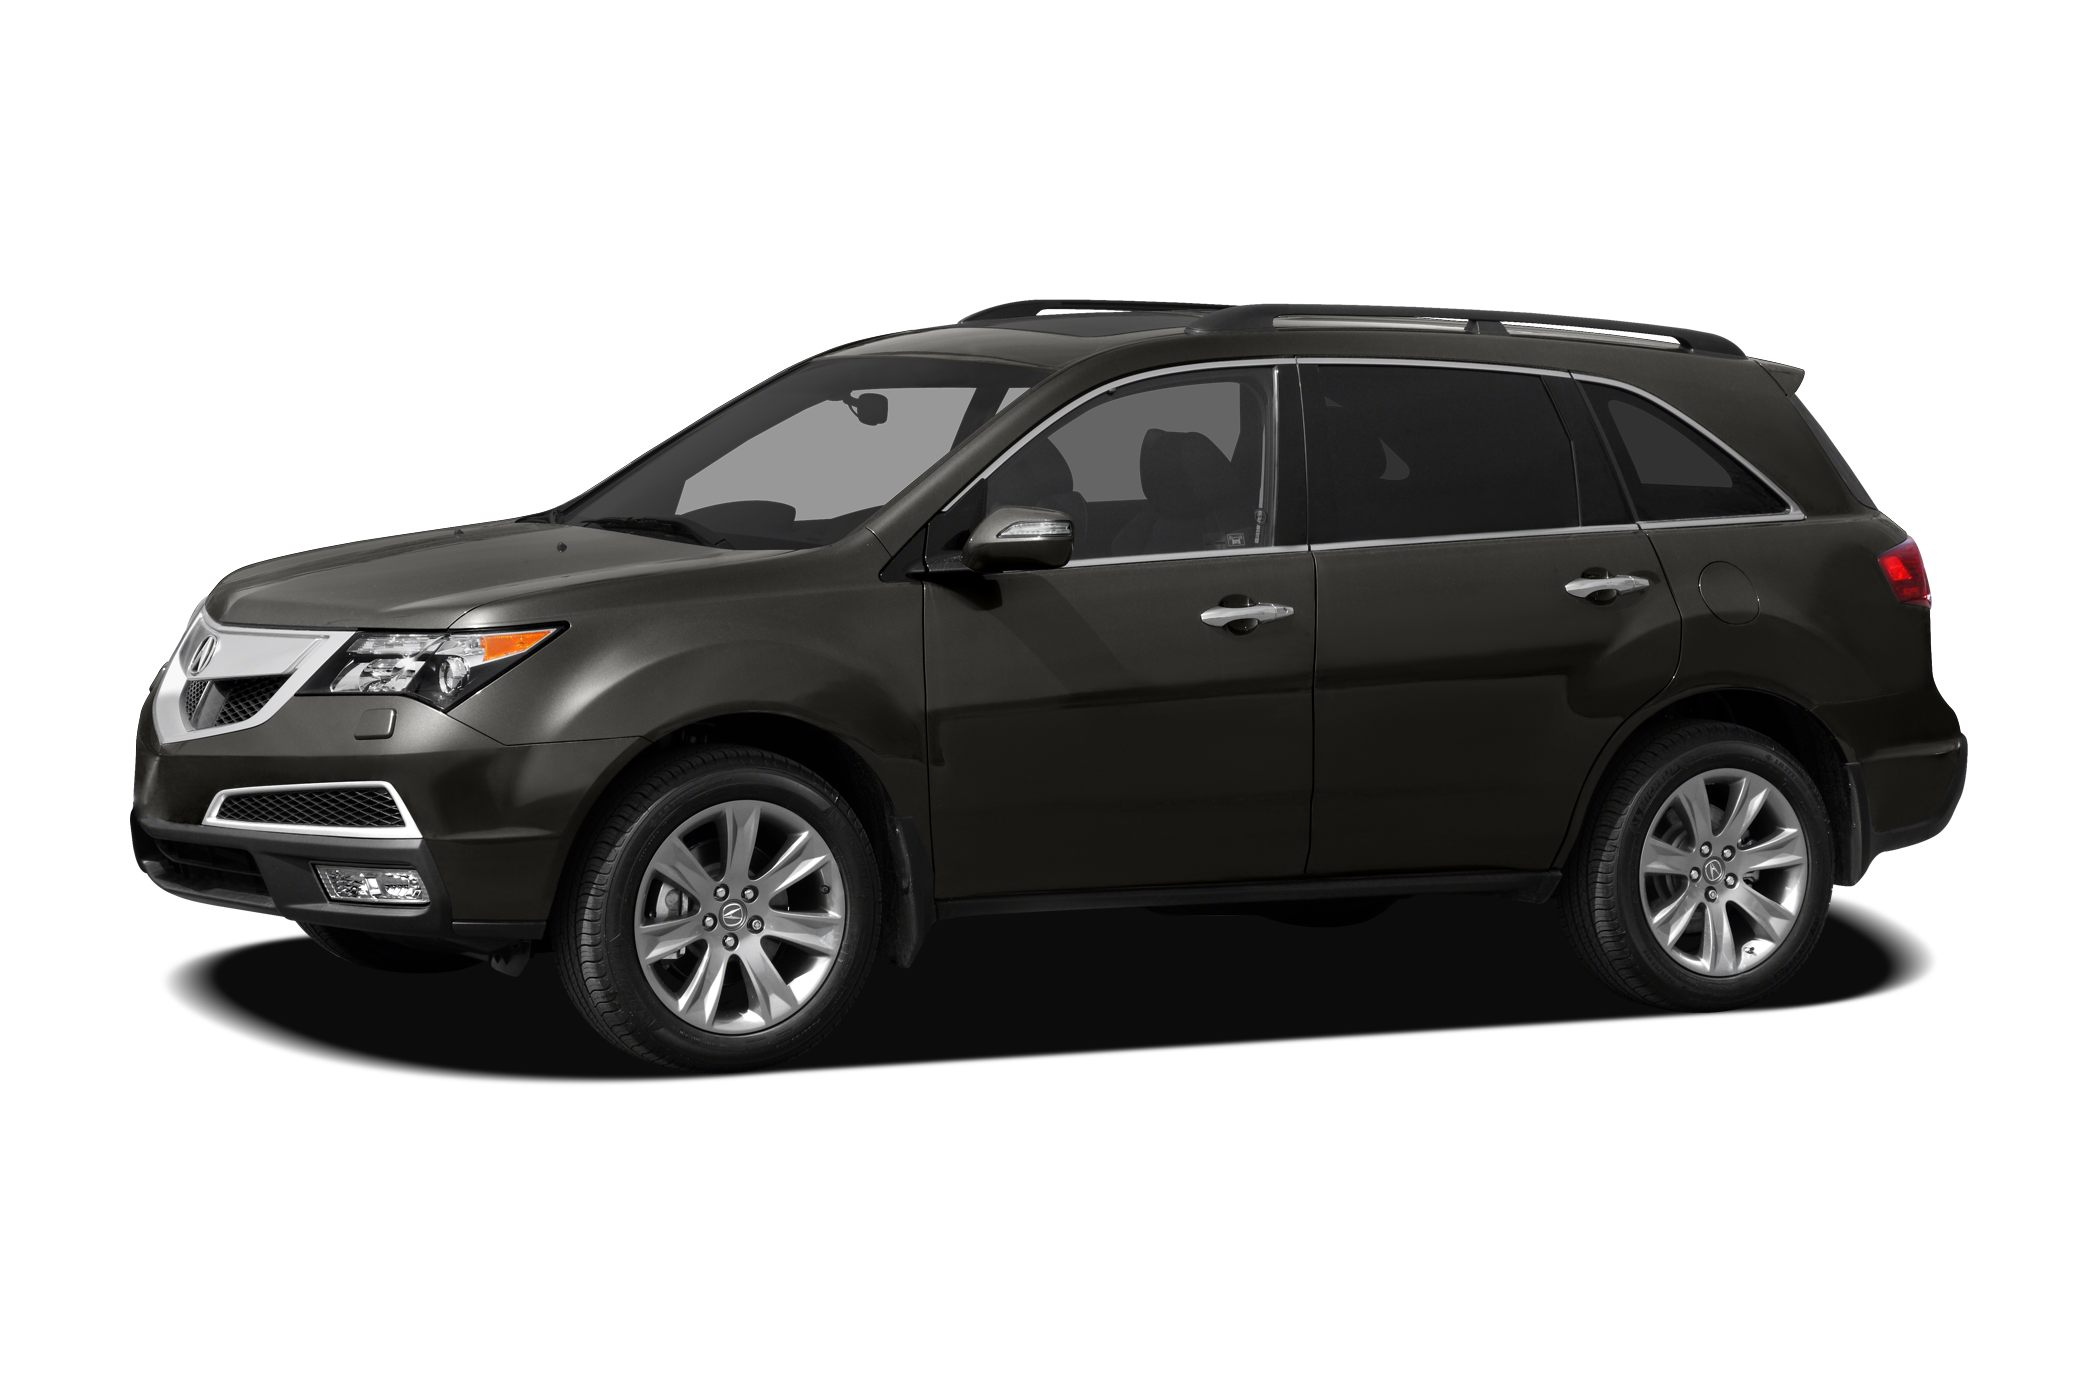 2012 Acura MDX 3.7L Technology SUV for sale in Downingtown for $32,195 with 32,800 miles